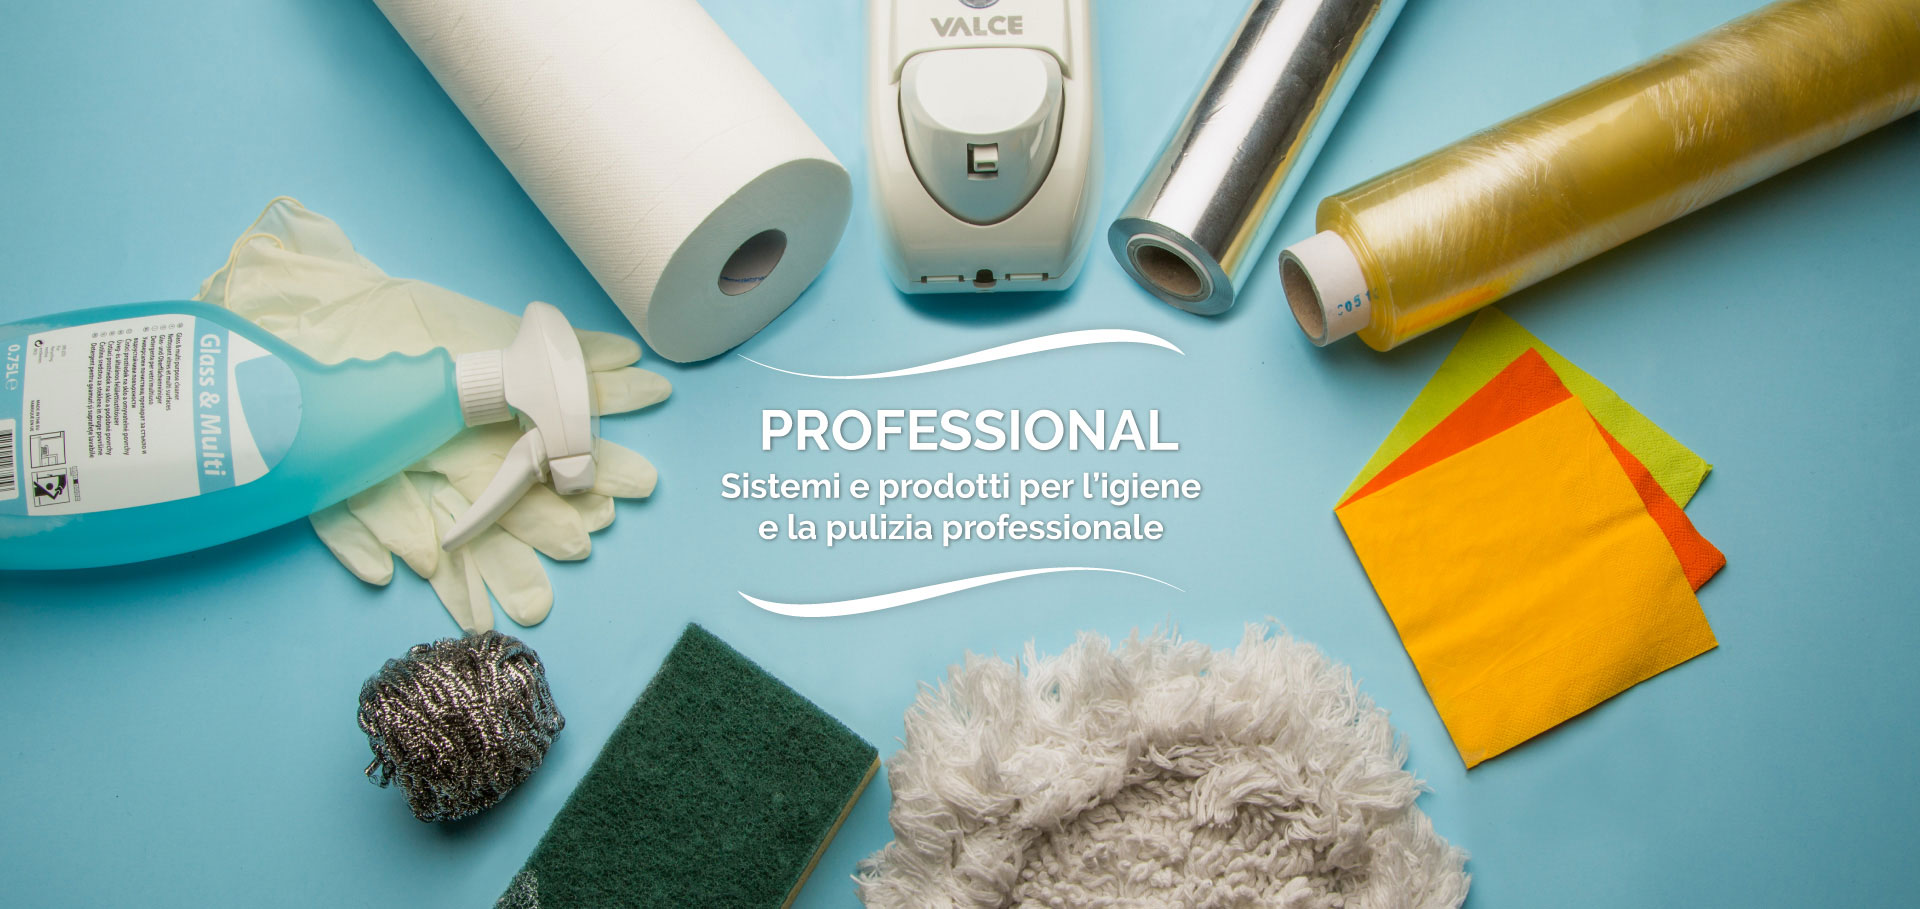 Valce Professional